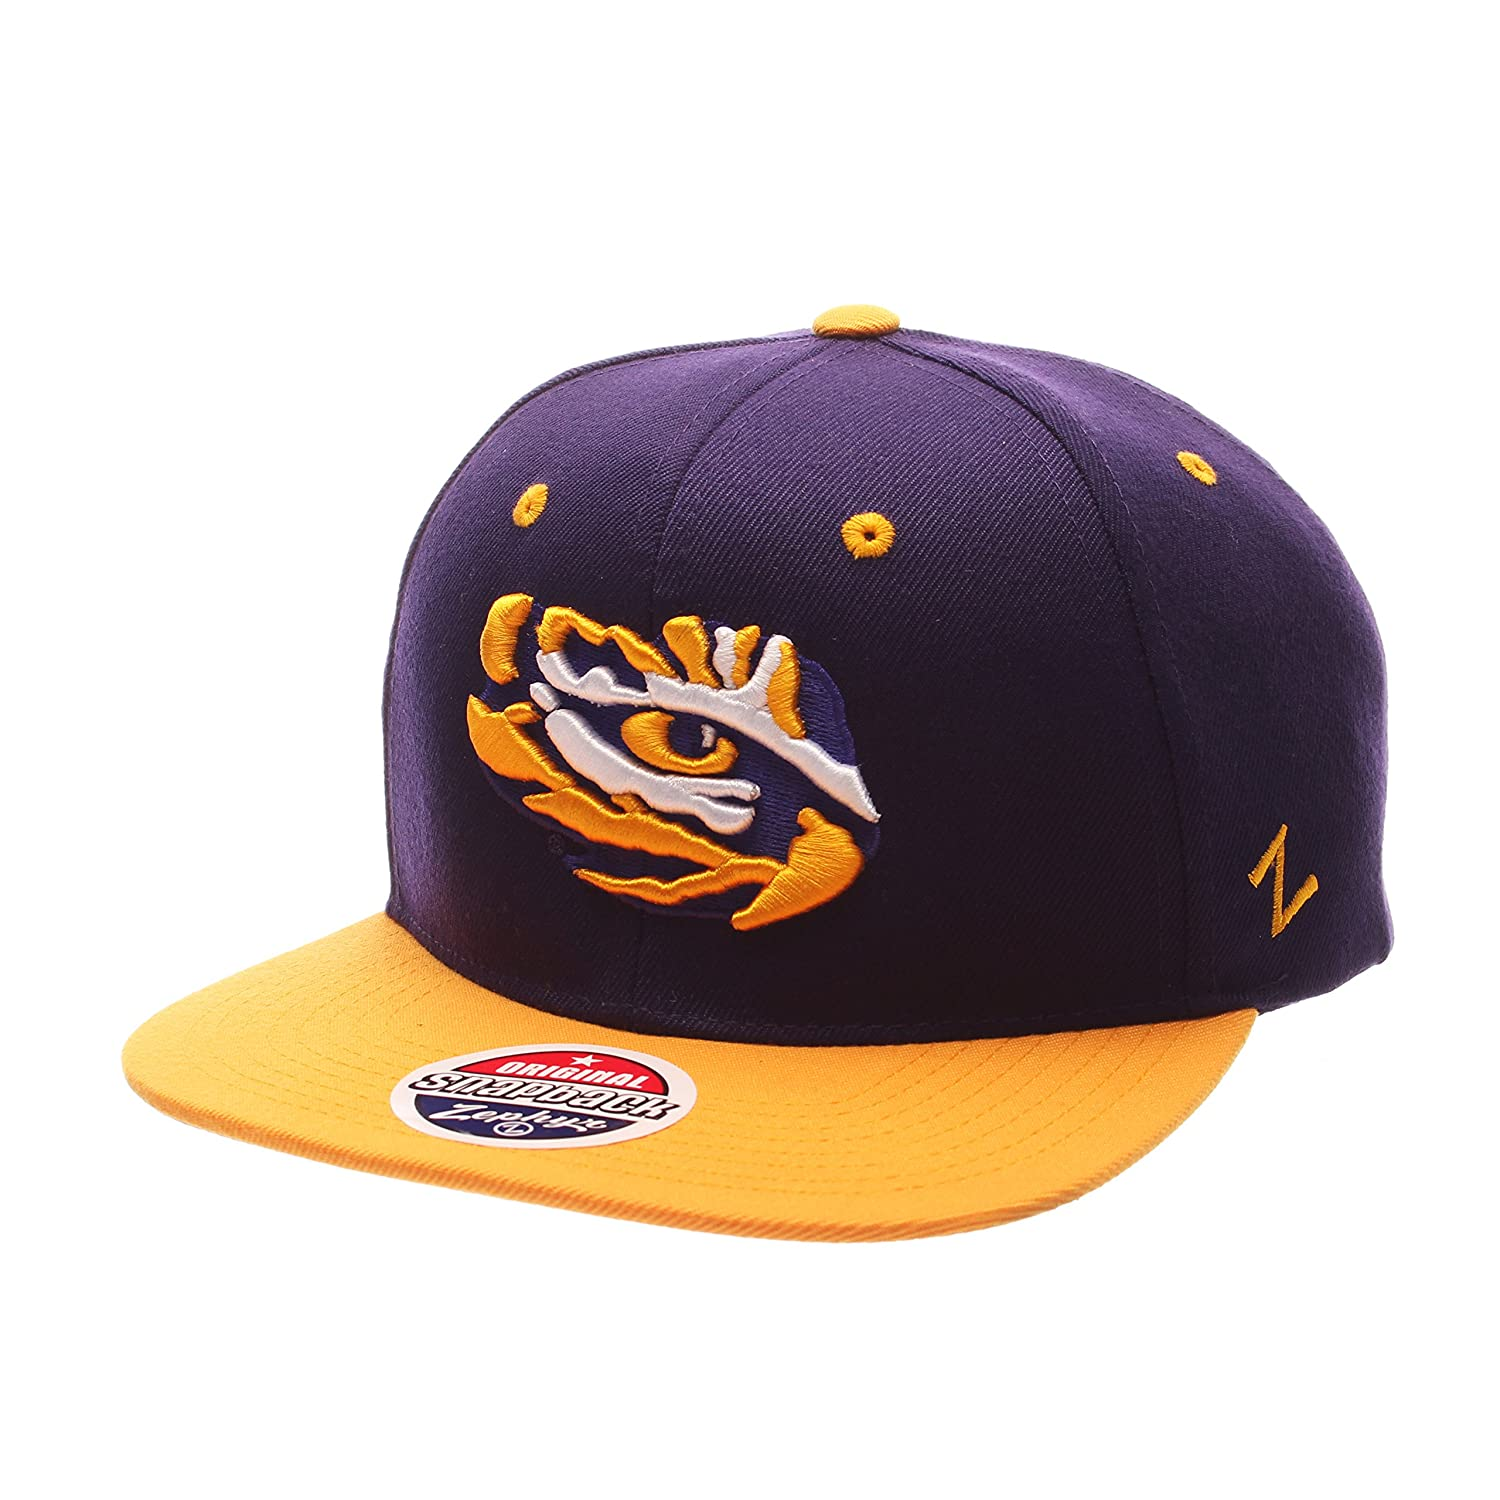 new arrival 6cff5 c2f3e ... clearance amazon zhats ncaa lsu tigers mens z11 snapback hat adjustable  size team color sports outdoors